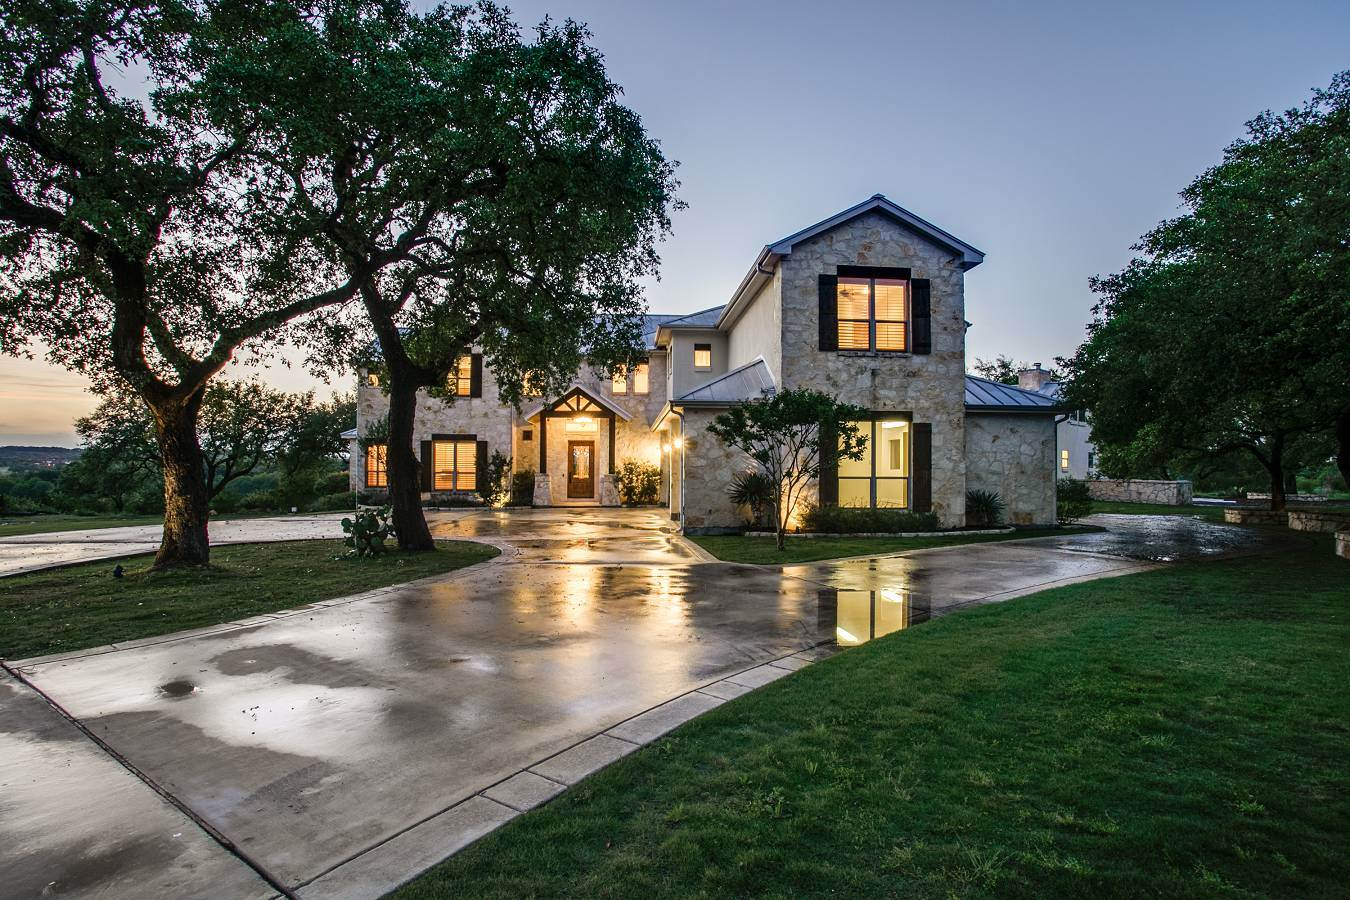 <b>Spring Branch, Texas</b><br/><i>4 Bedrooms, 5,307 sq. ft.</i><br/>Canyon Lake estate with Guadalupe River frontage